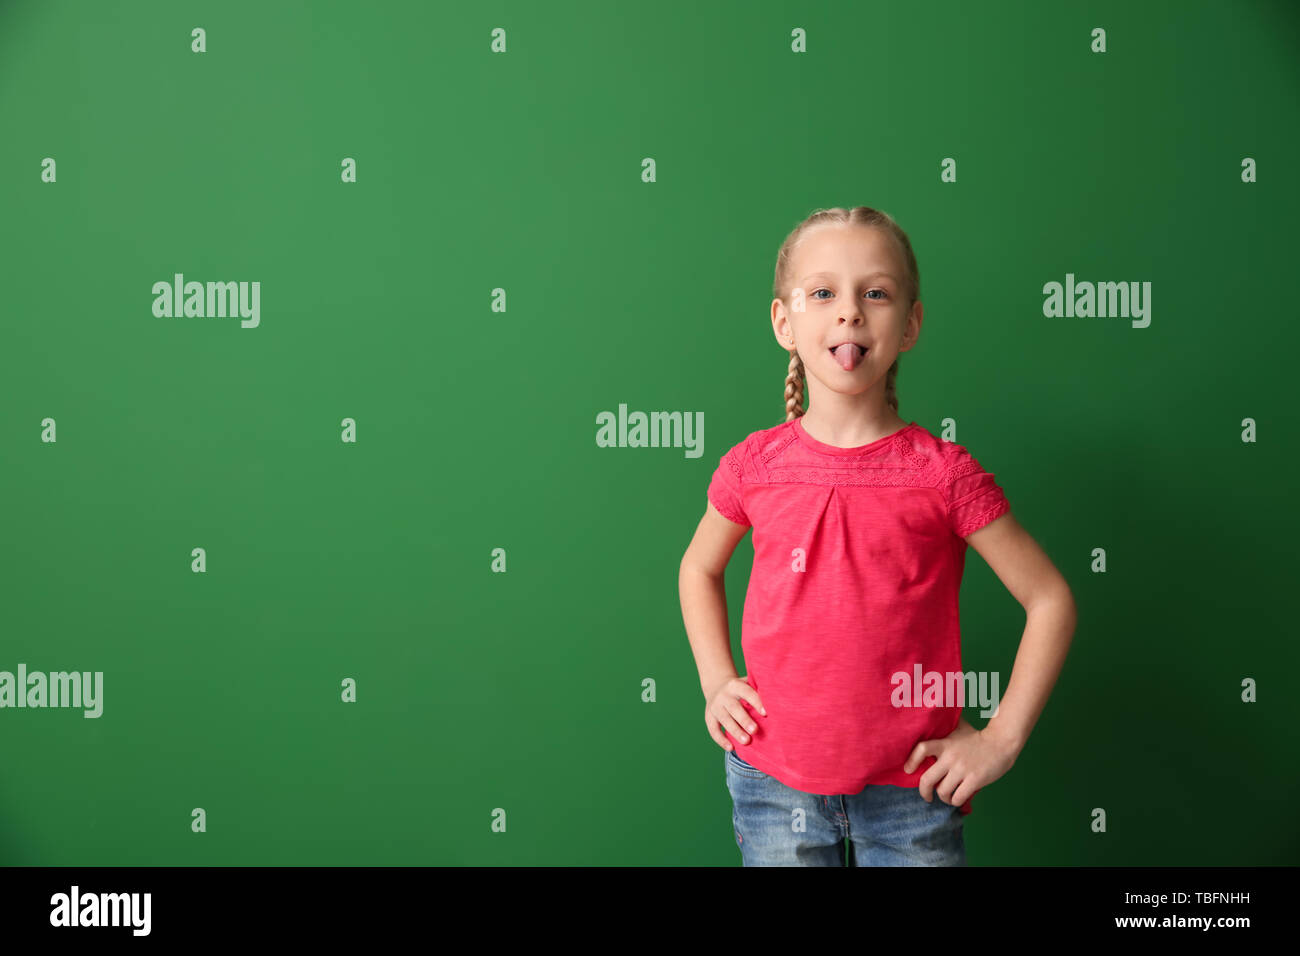 Little girl showing tongue on color background - Stock Image